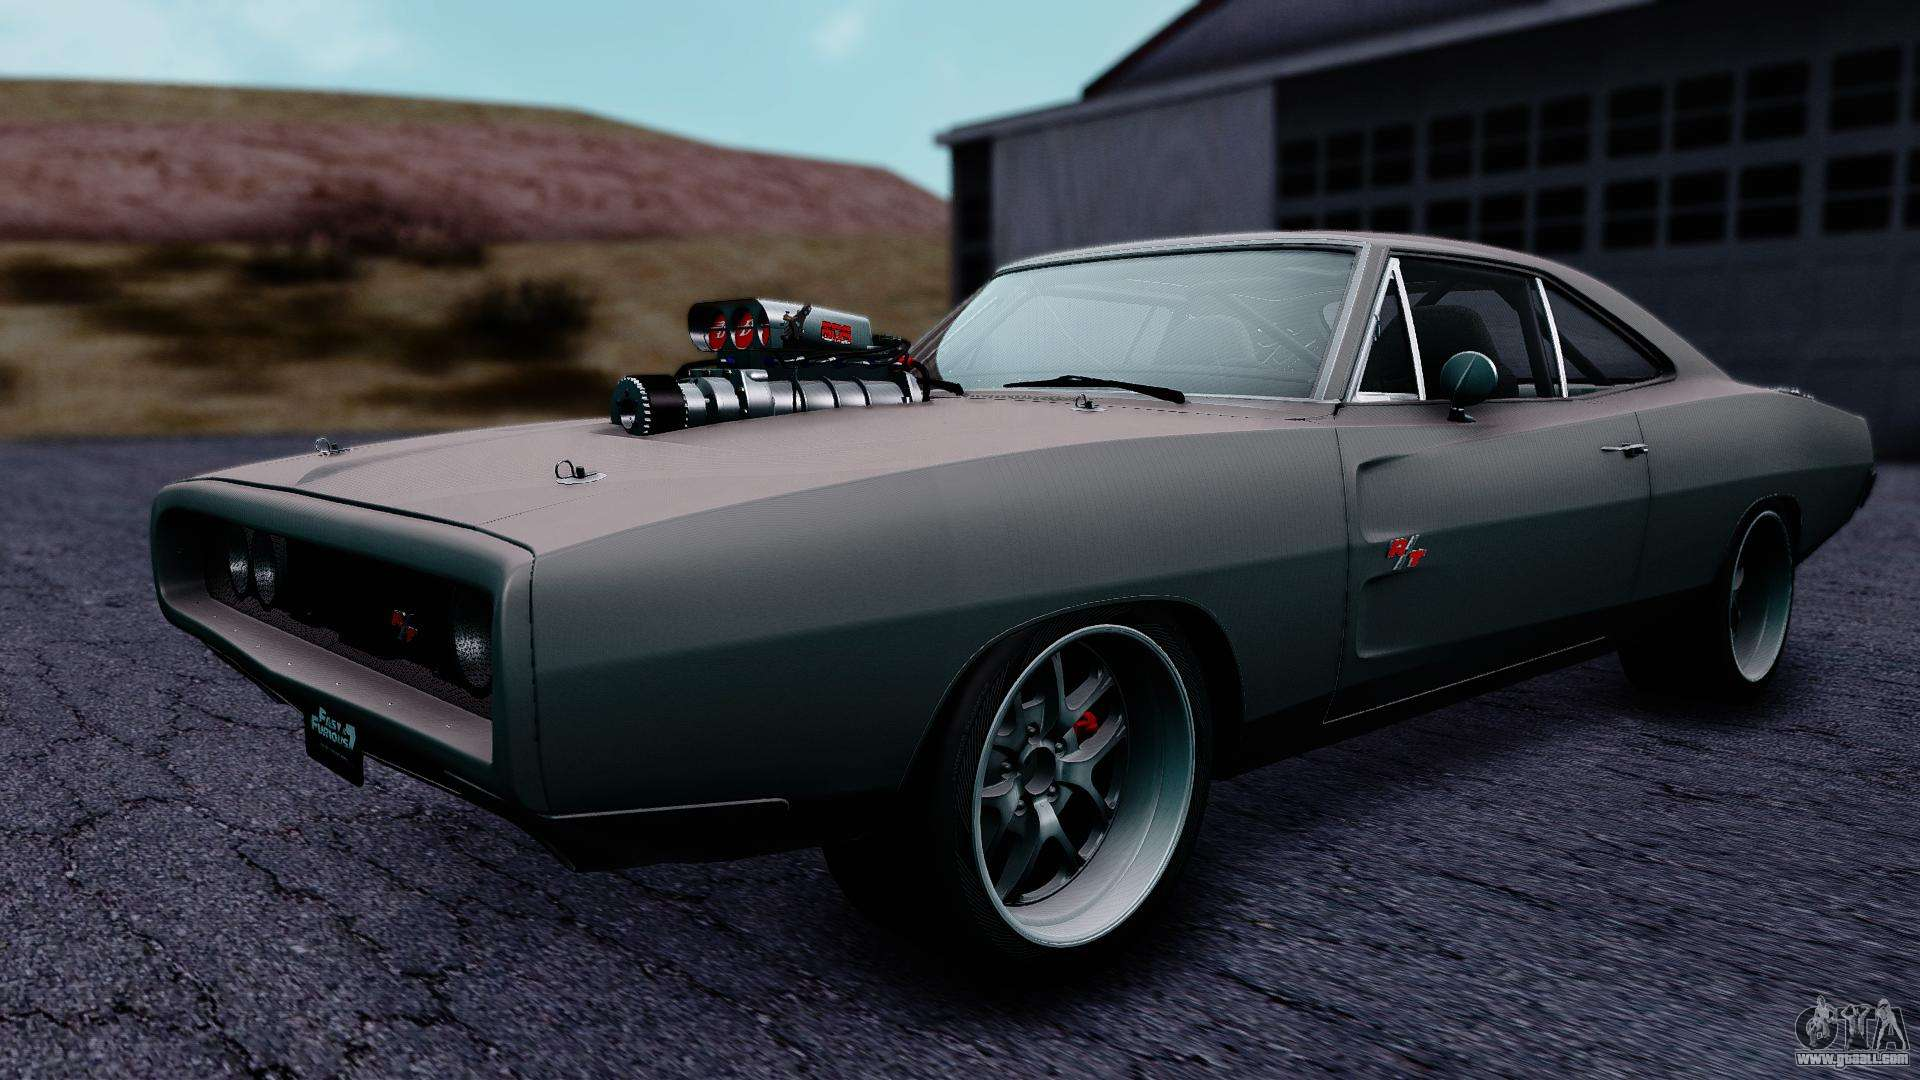 dodge charger rt 1970 fnf7 for gta san andreas. Black Bedroom Furniture Sets. Home Design Ideas